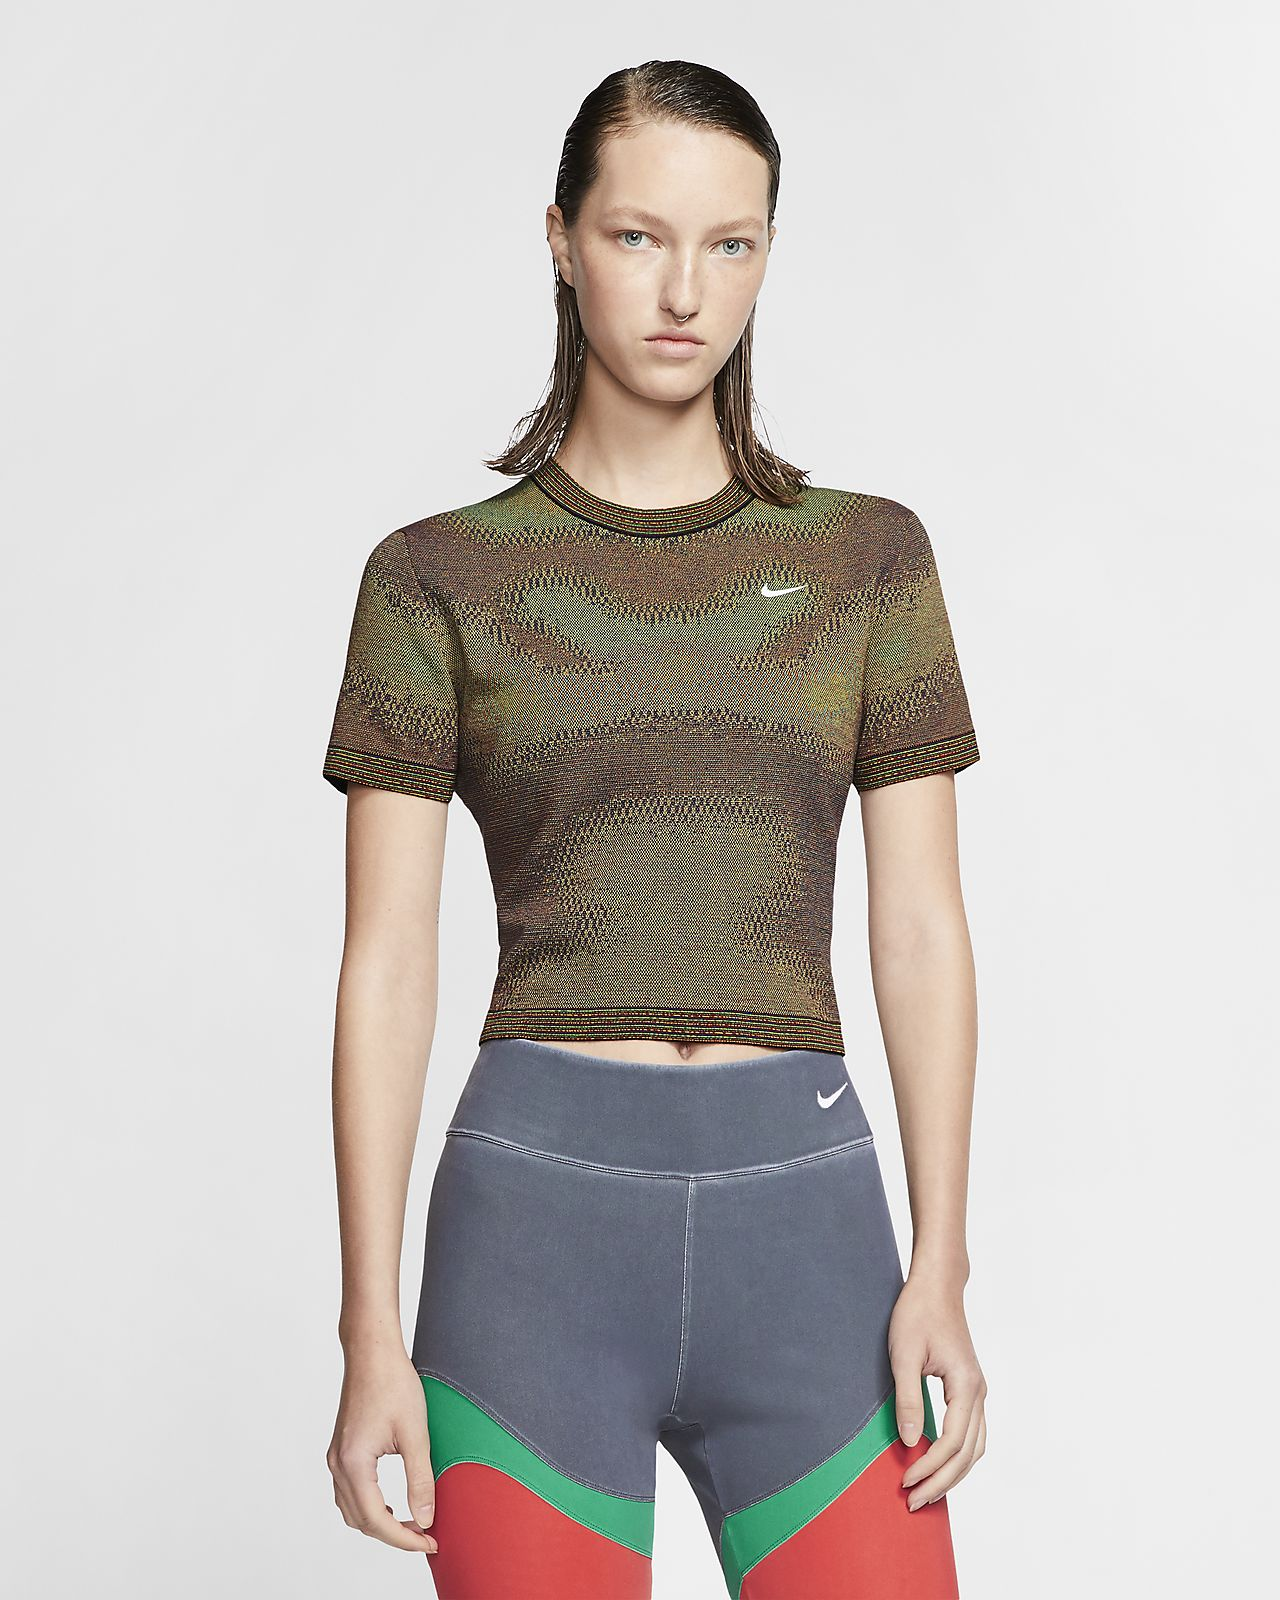 Nike Made In Italy Short-Sleeve Top